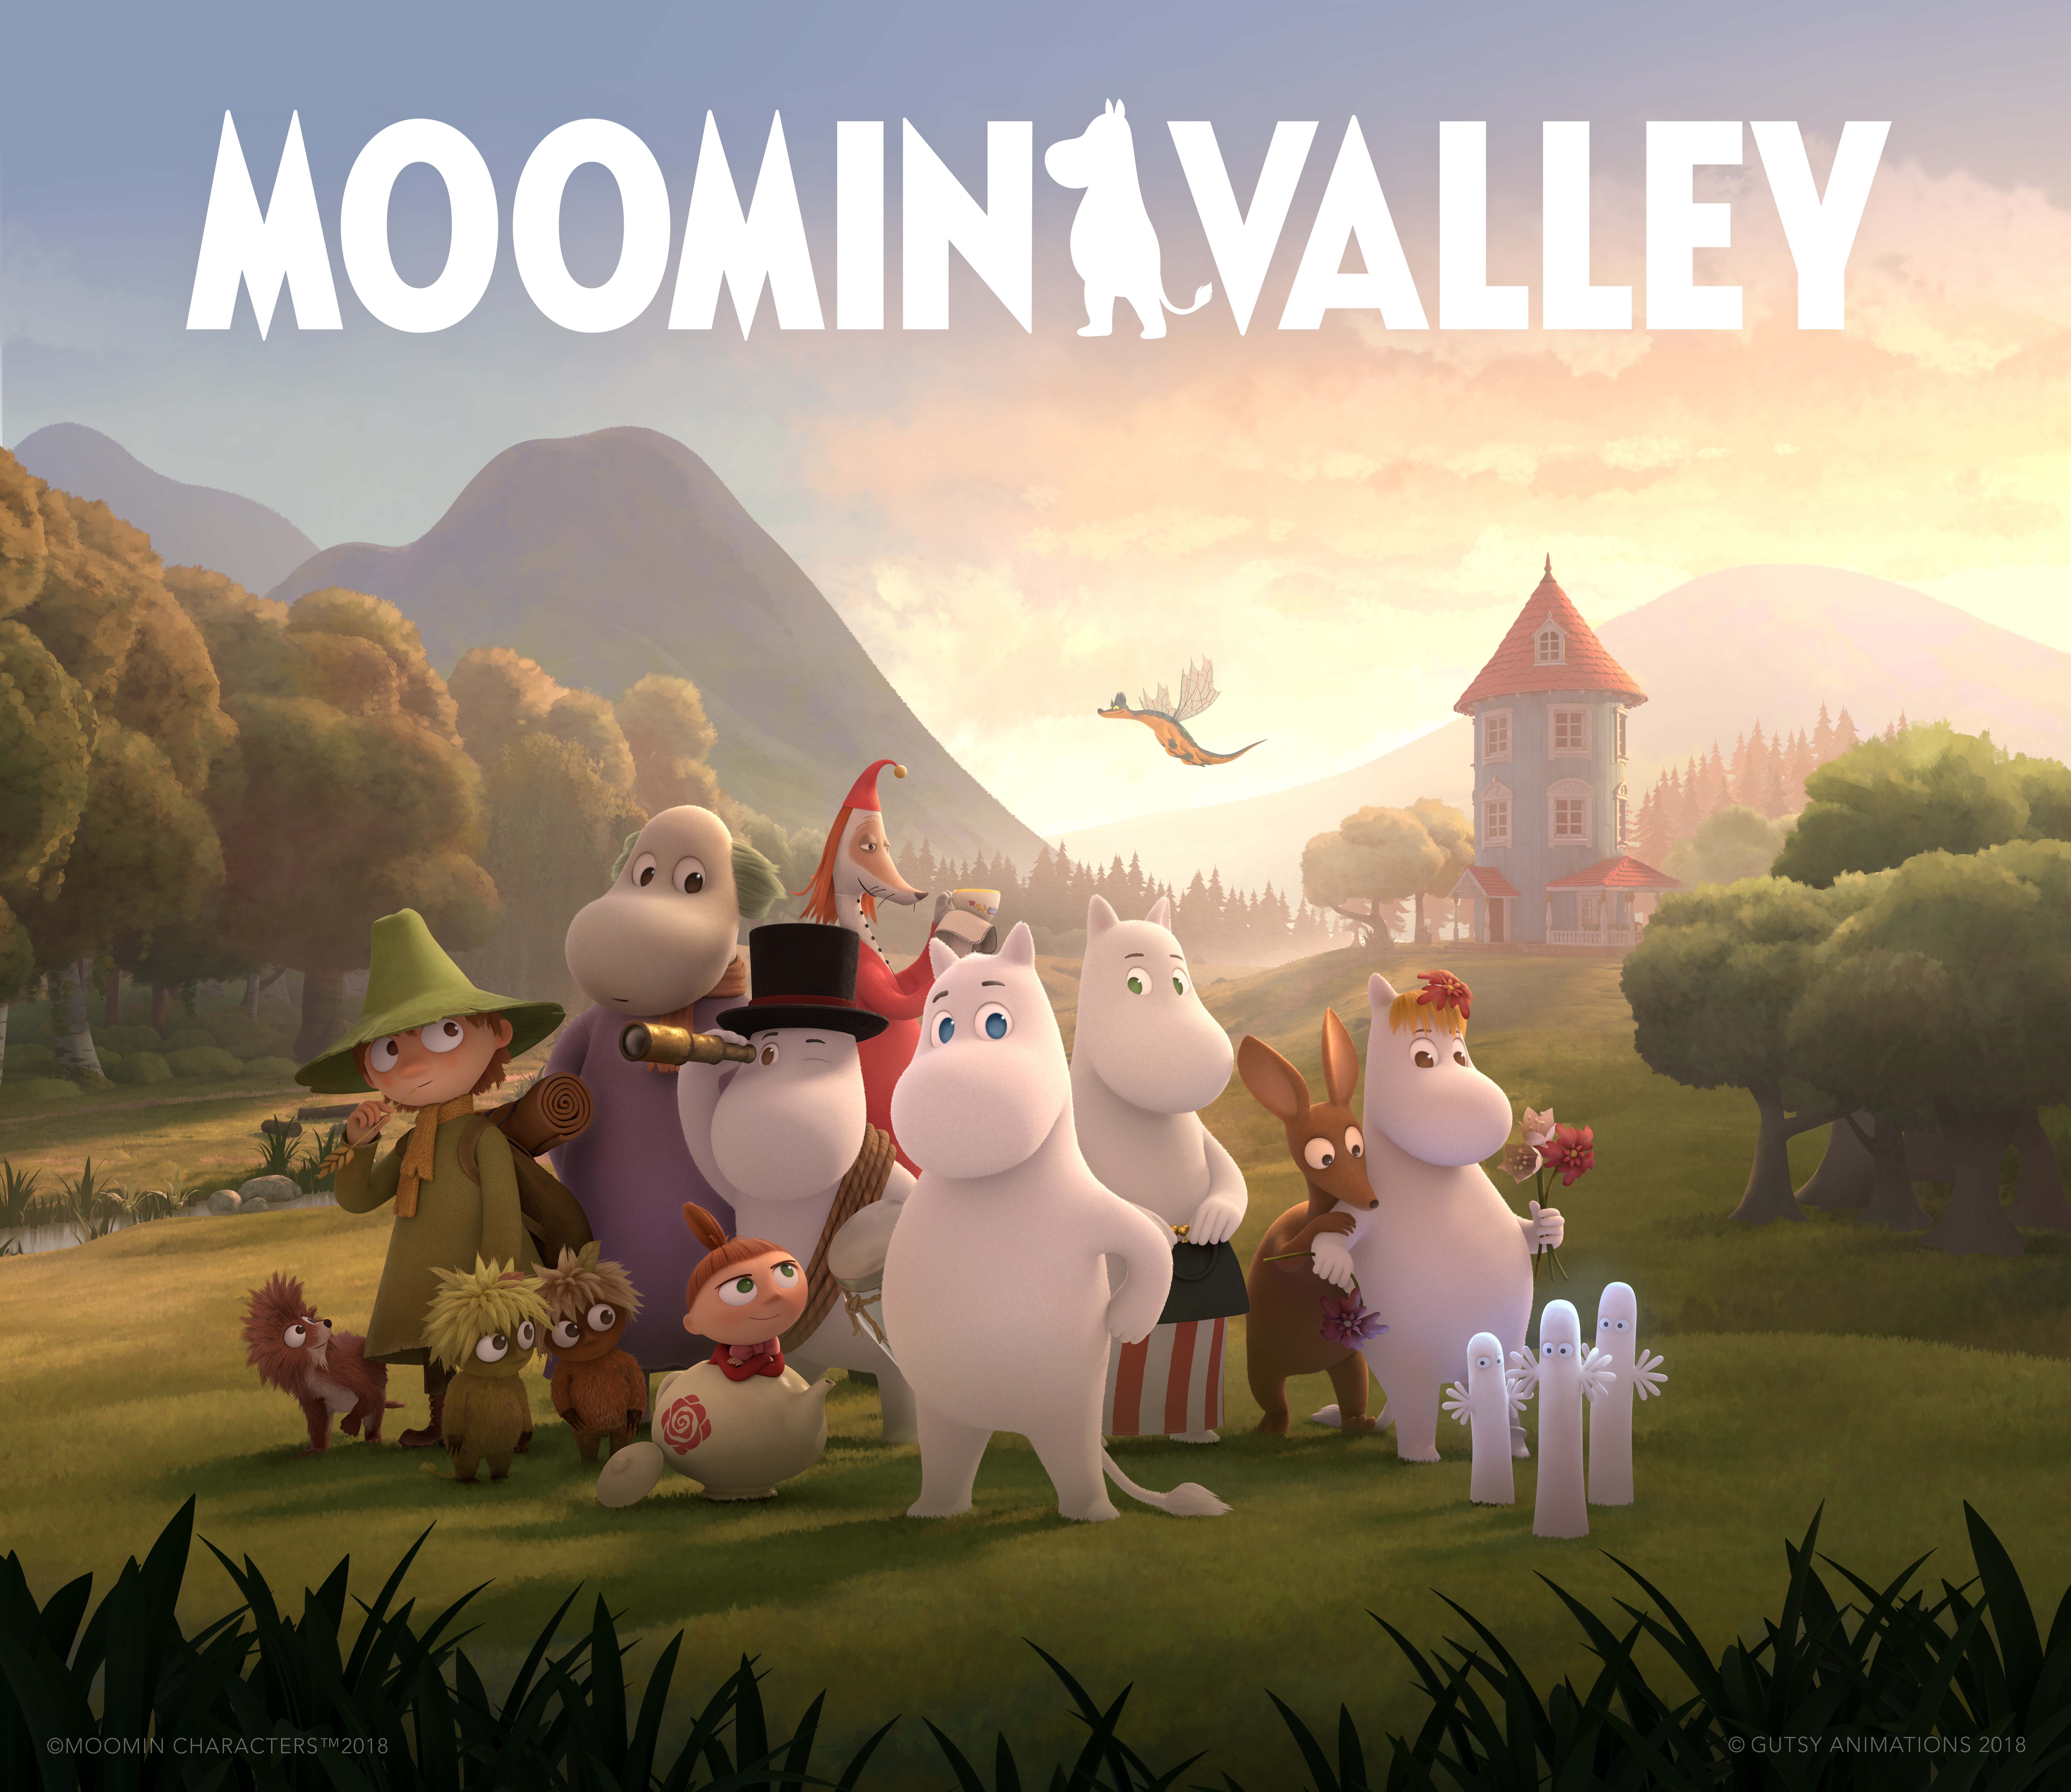 Moominvalley Soundtrack (S1)